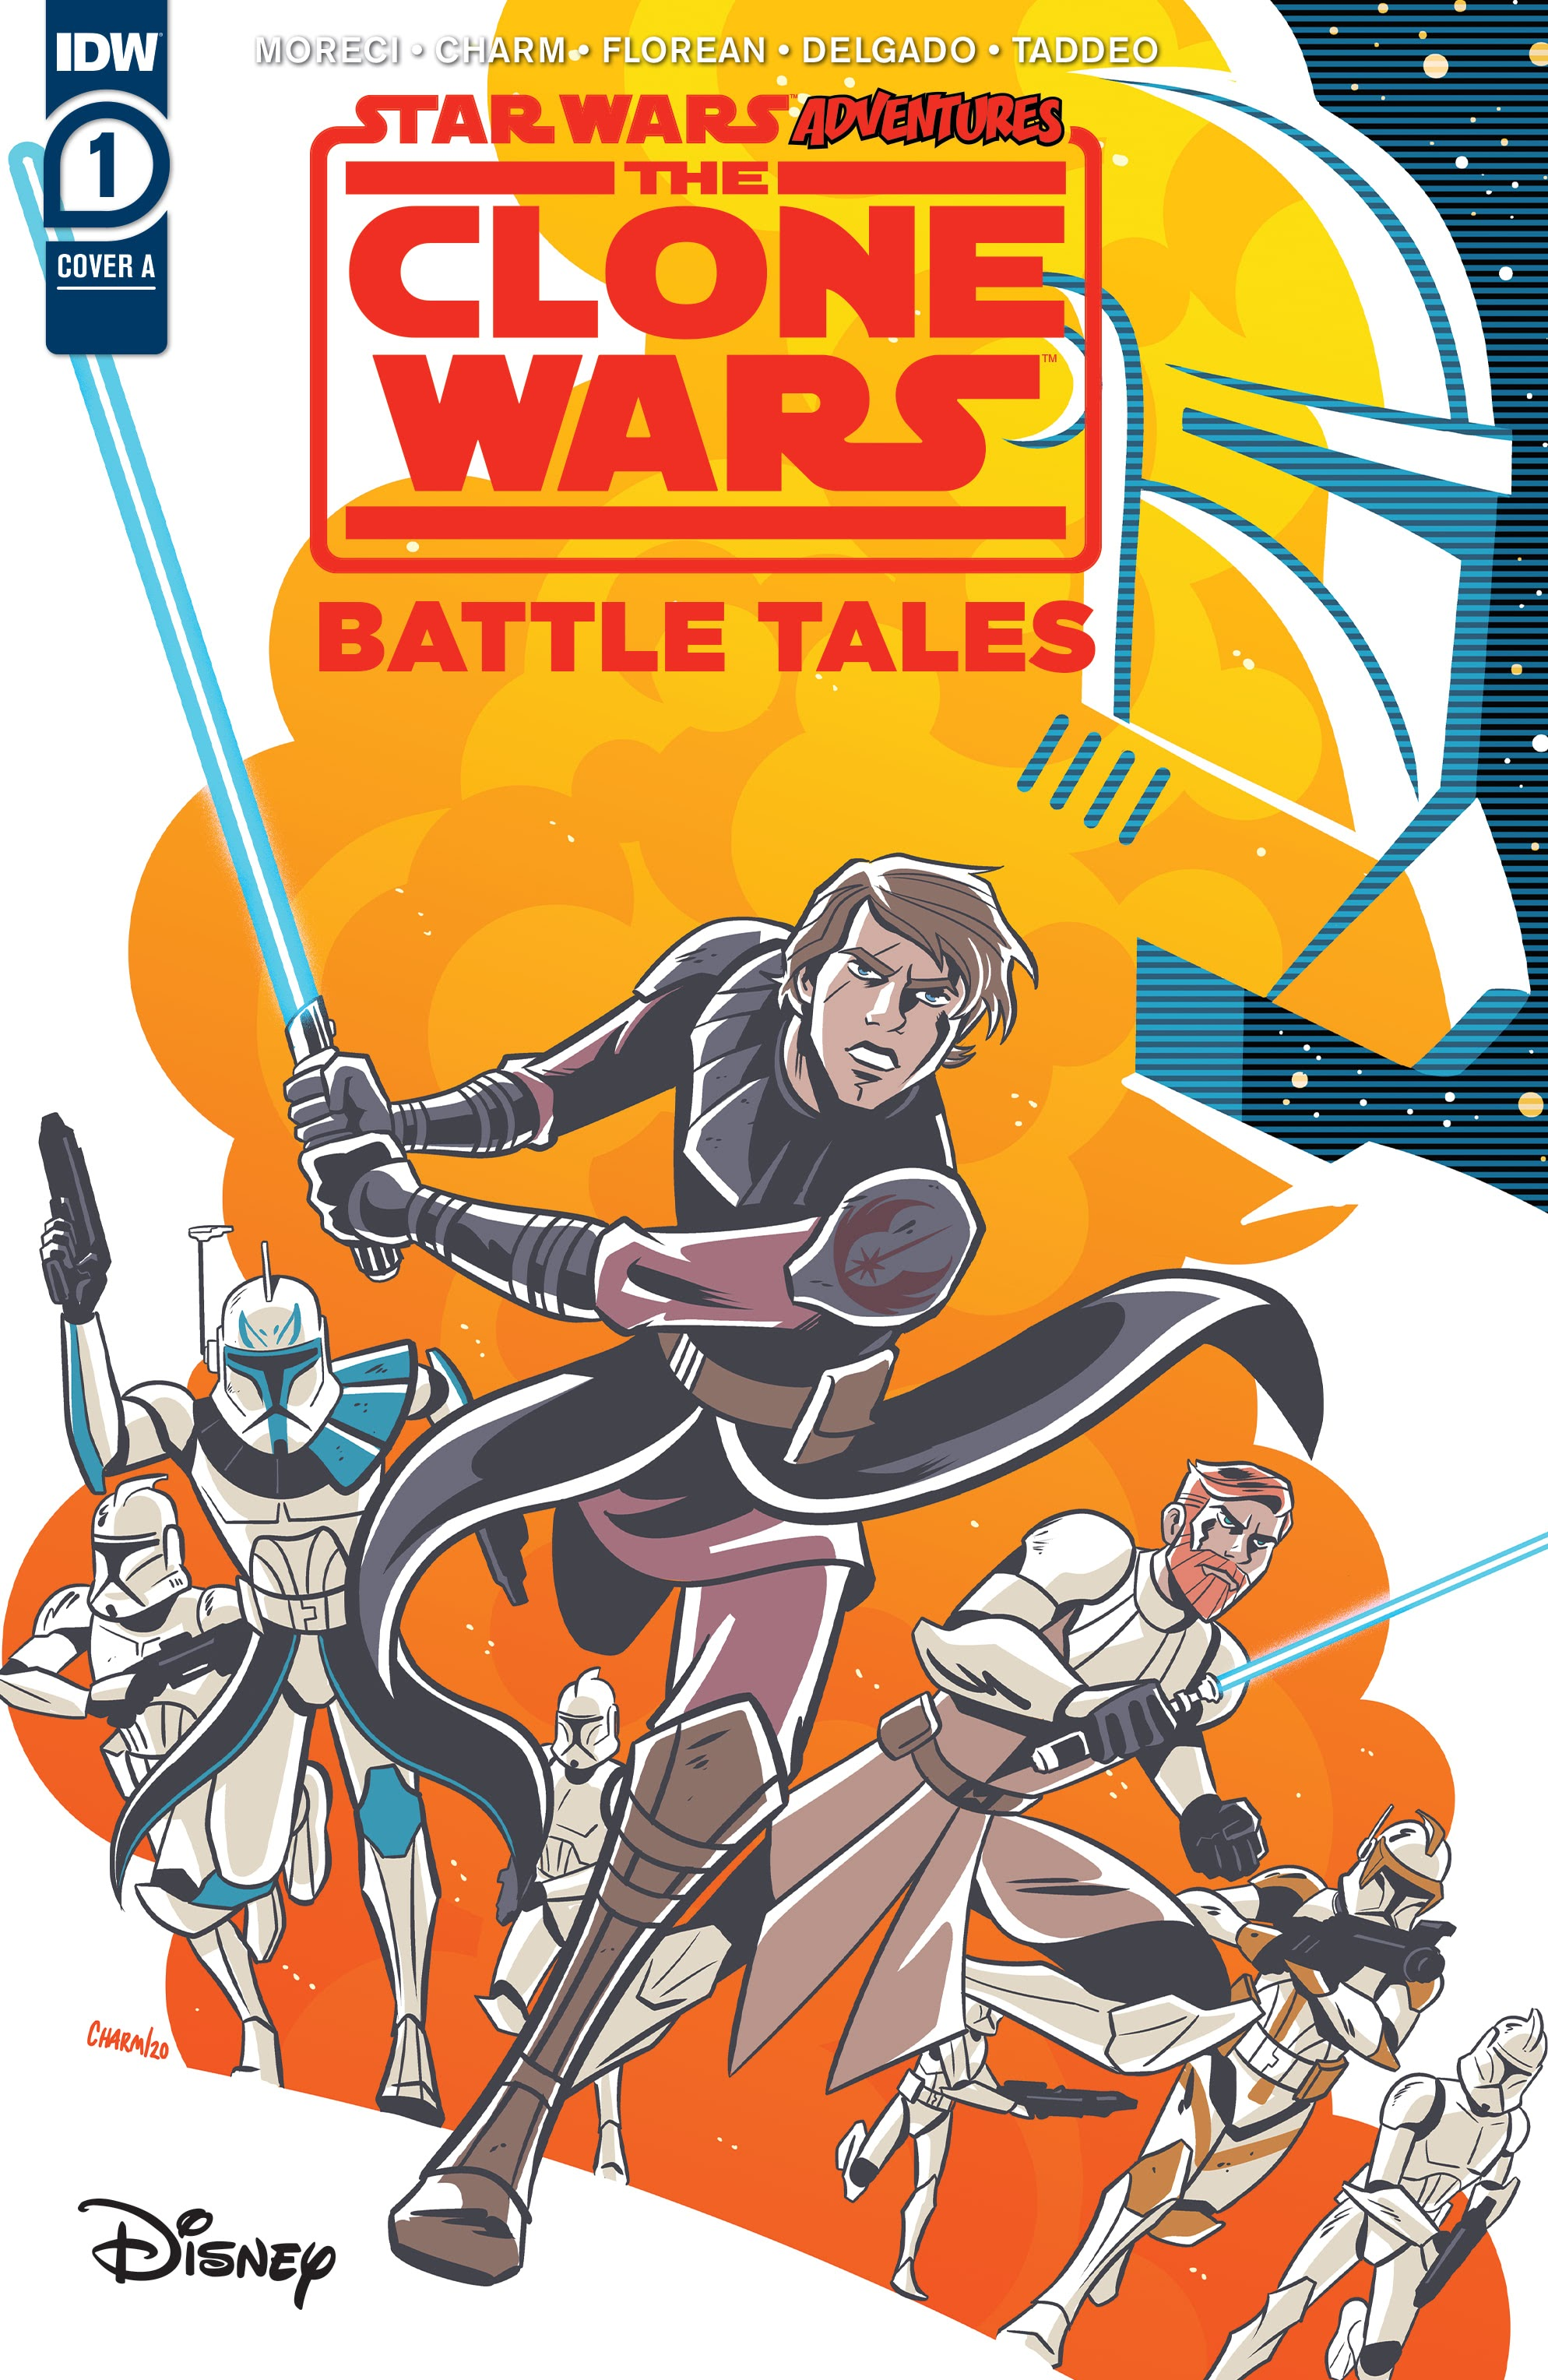 Star Wars Adventures: The Clone Wars-Battle Tales 1 Page 1